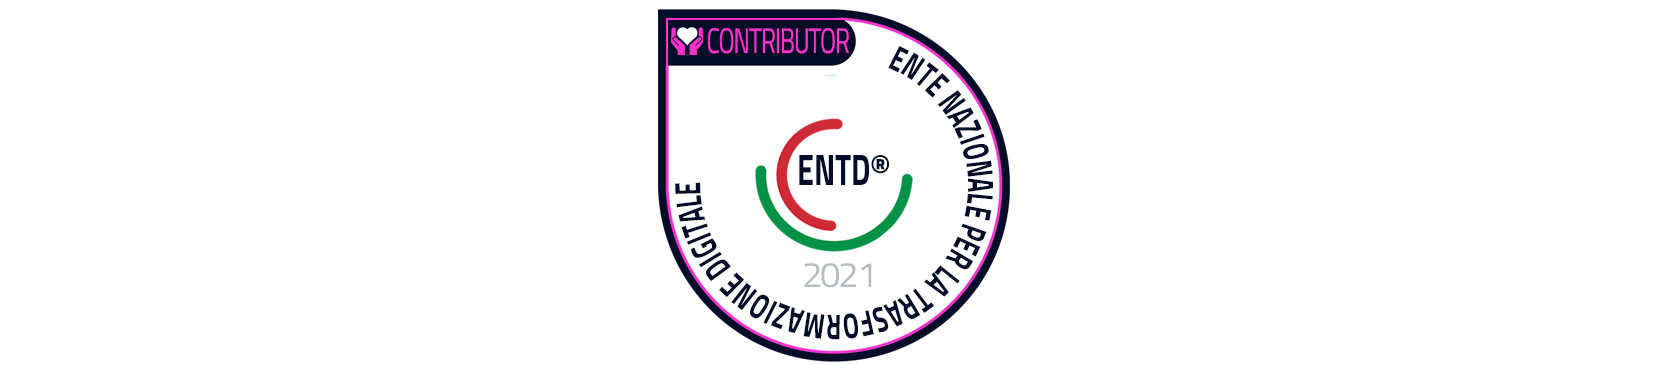 ENTD Contributor Personal Badge